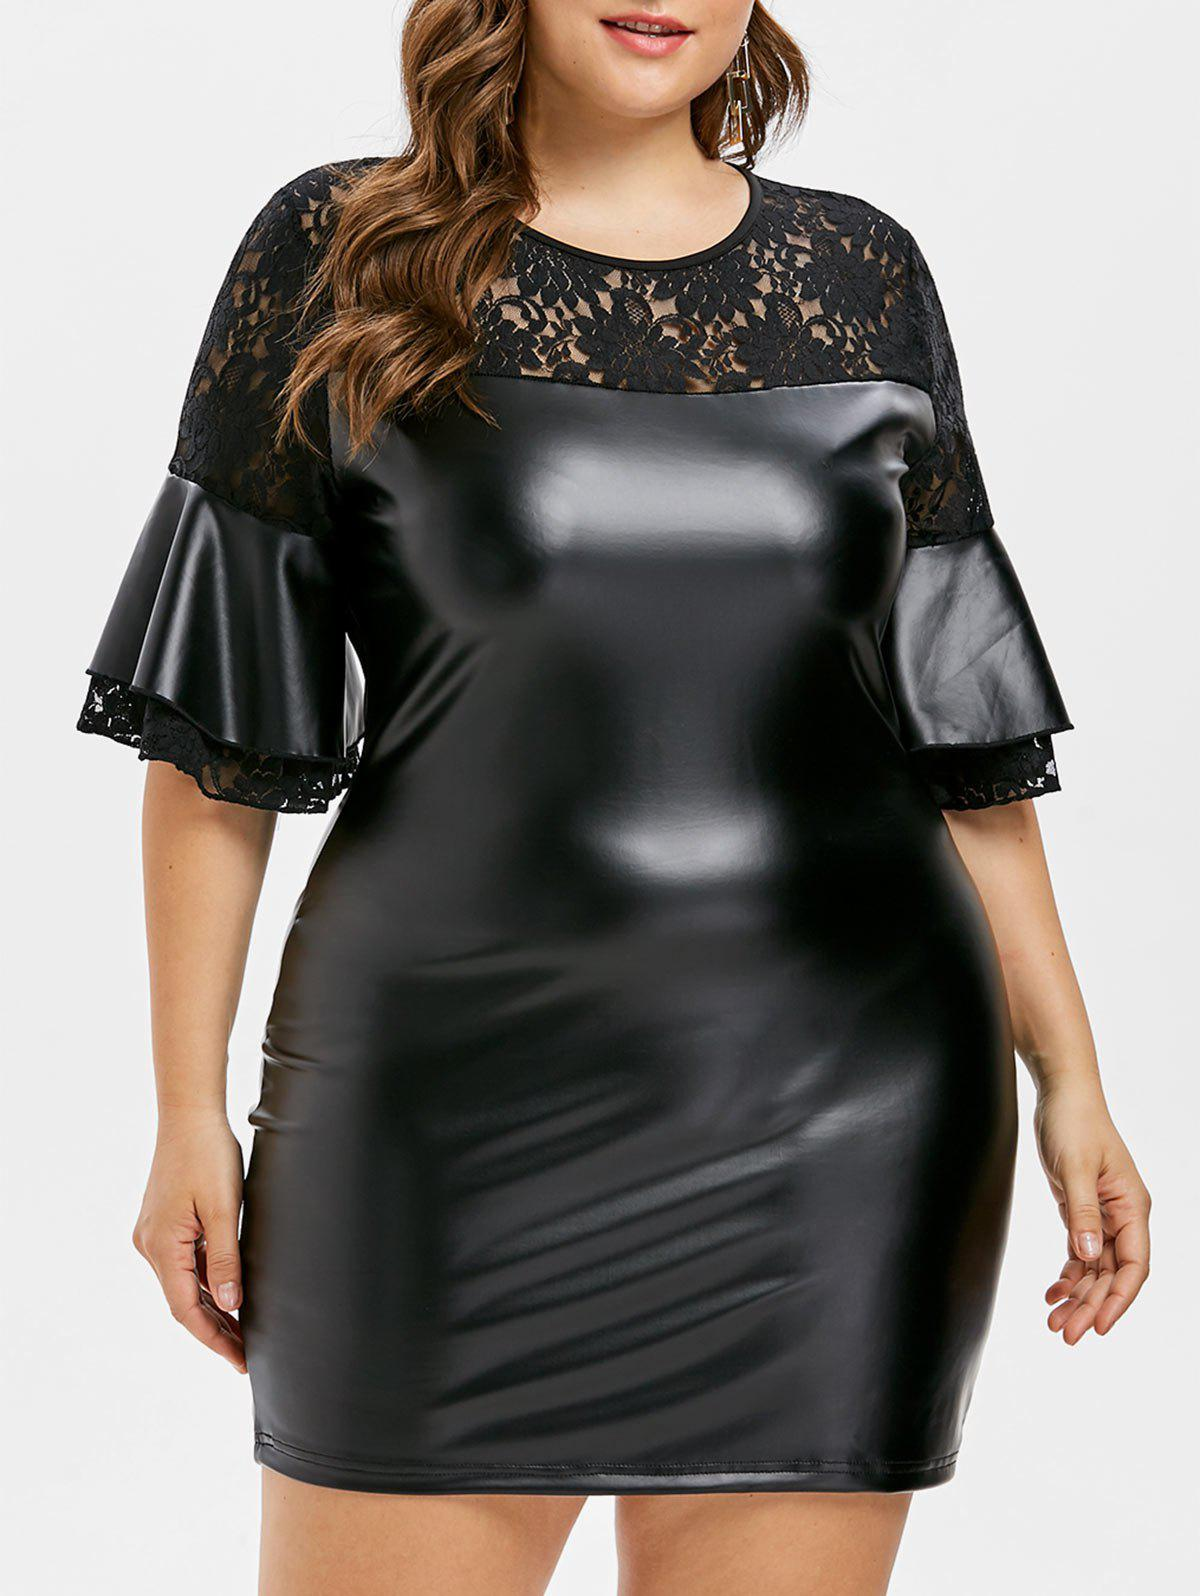 Plus Size Bell Sleeve Bodycon Dress - BLACK 3X